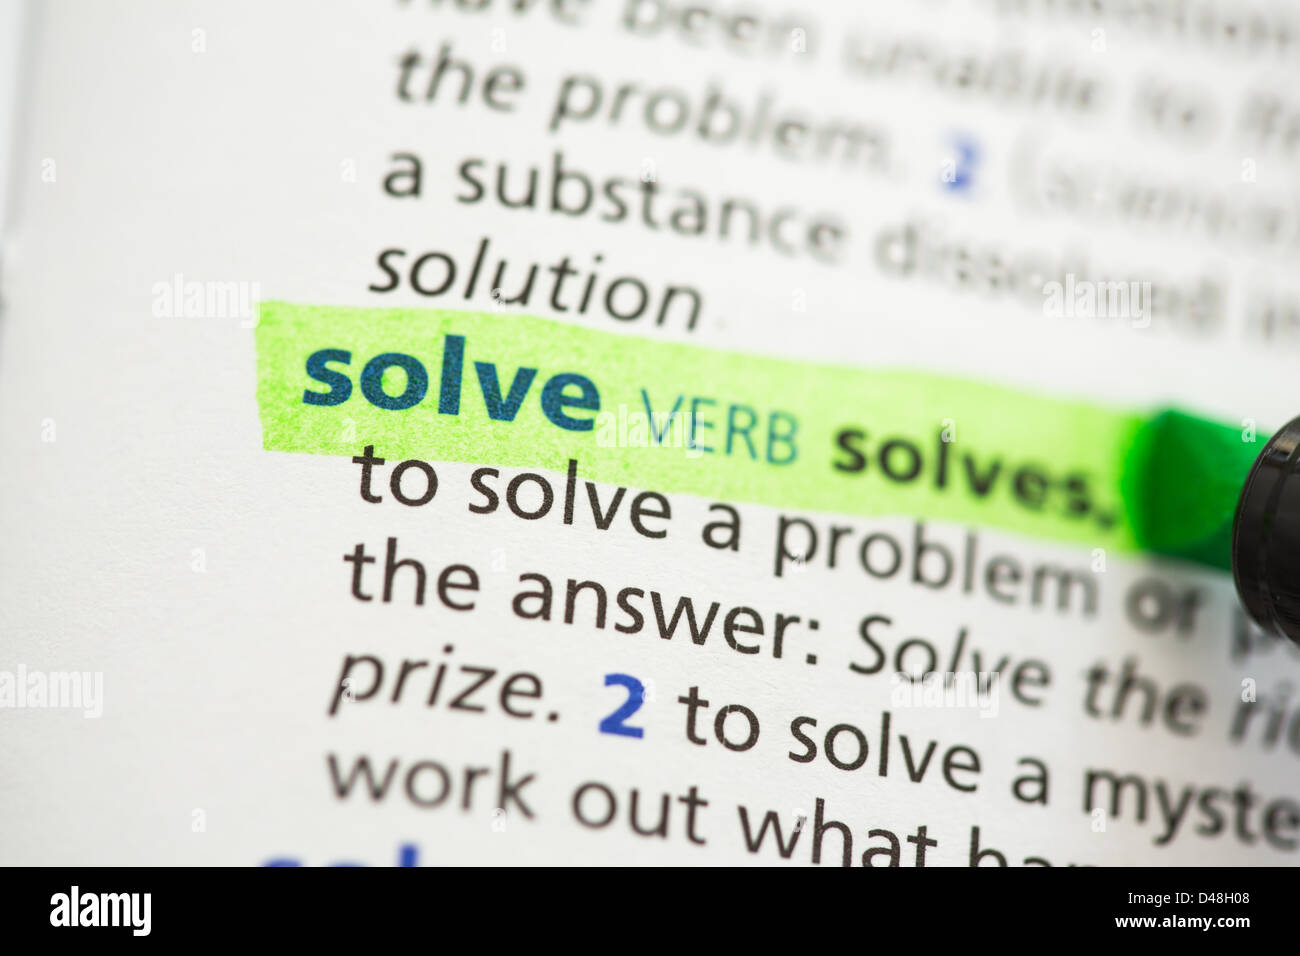 Solve definition highlighted - Stock Image